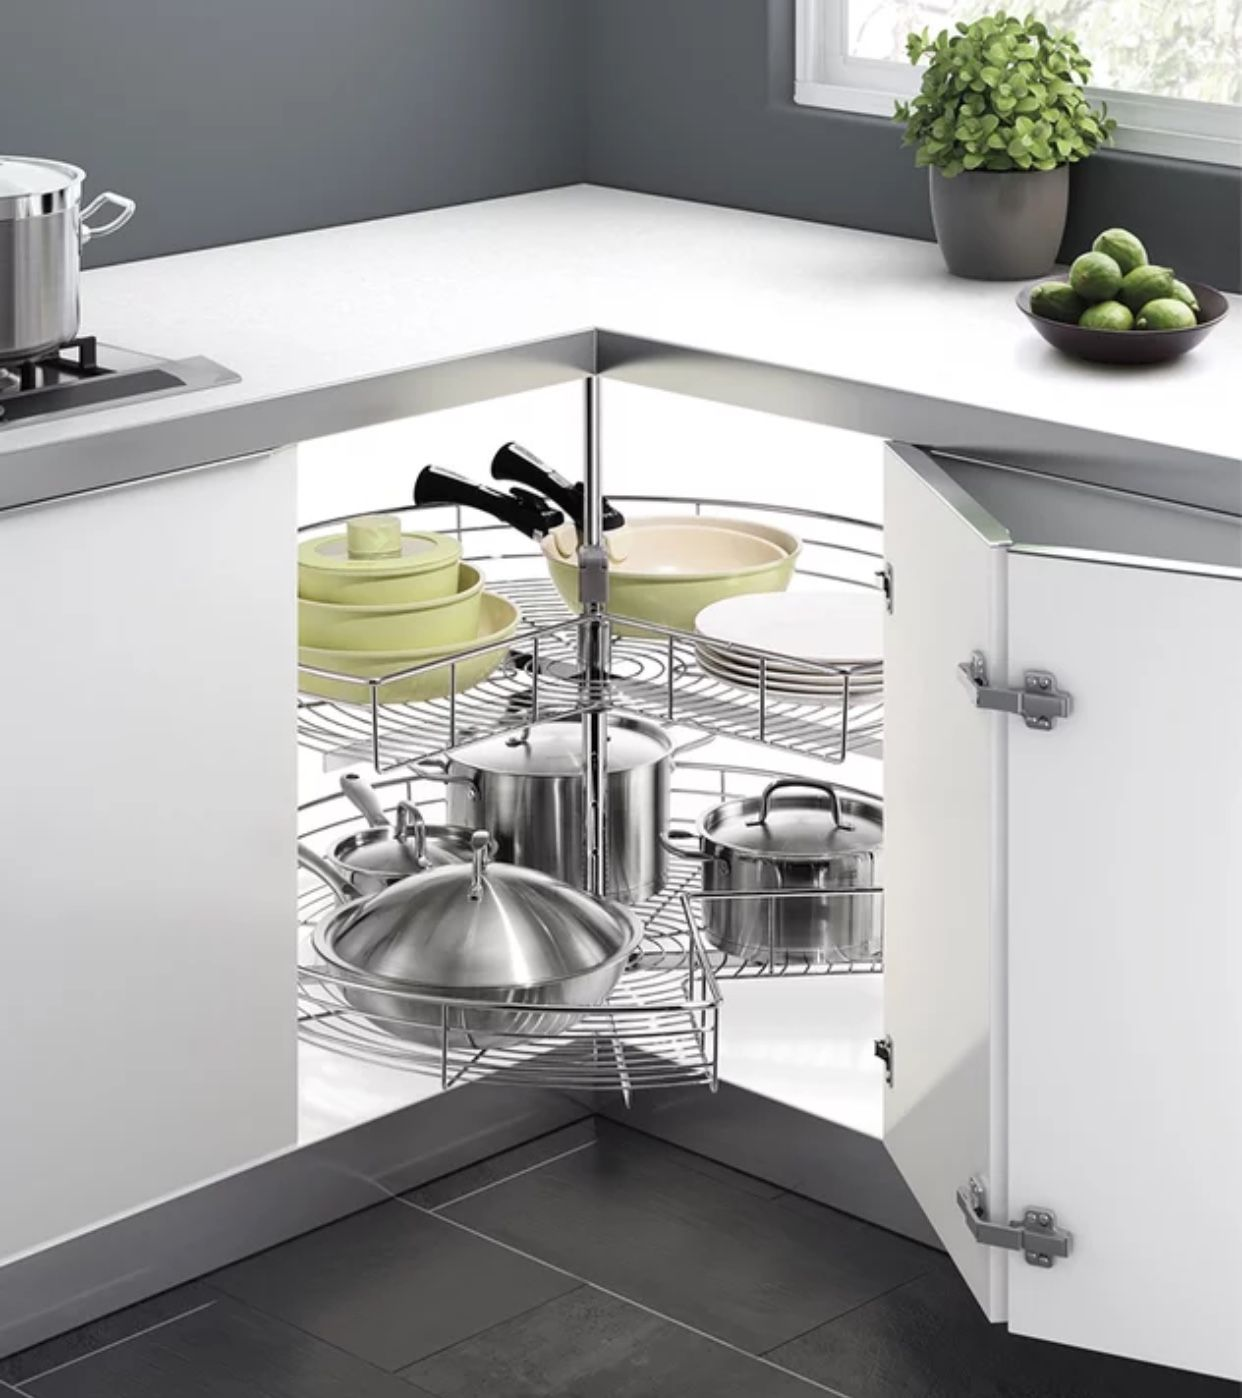 Lazy Susan Kitchen Cabinets For Sale Kitchen Remodel Small Modular Kitchen Cabinets